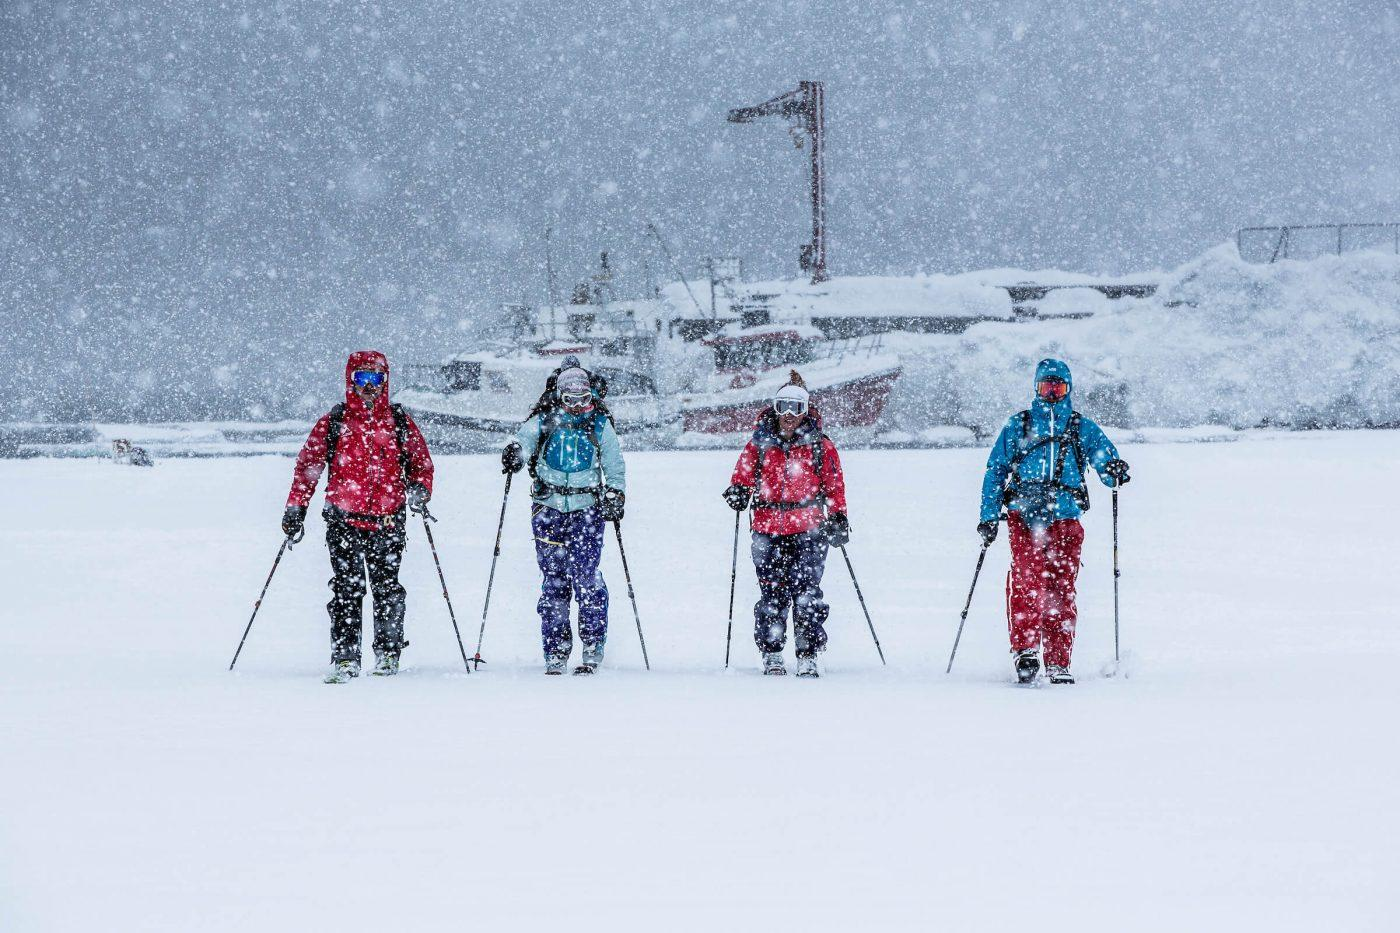 Ski touring skiers in heavy snowfall in Kuummiut in East Greenland. Photo by Mads Pihl